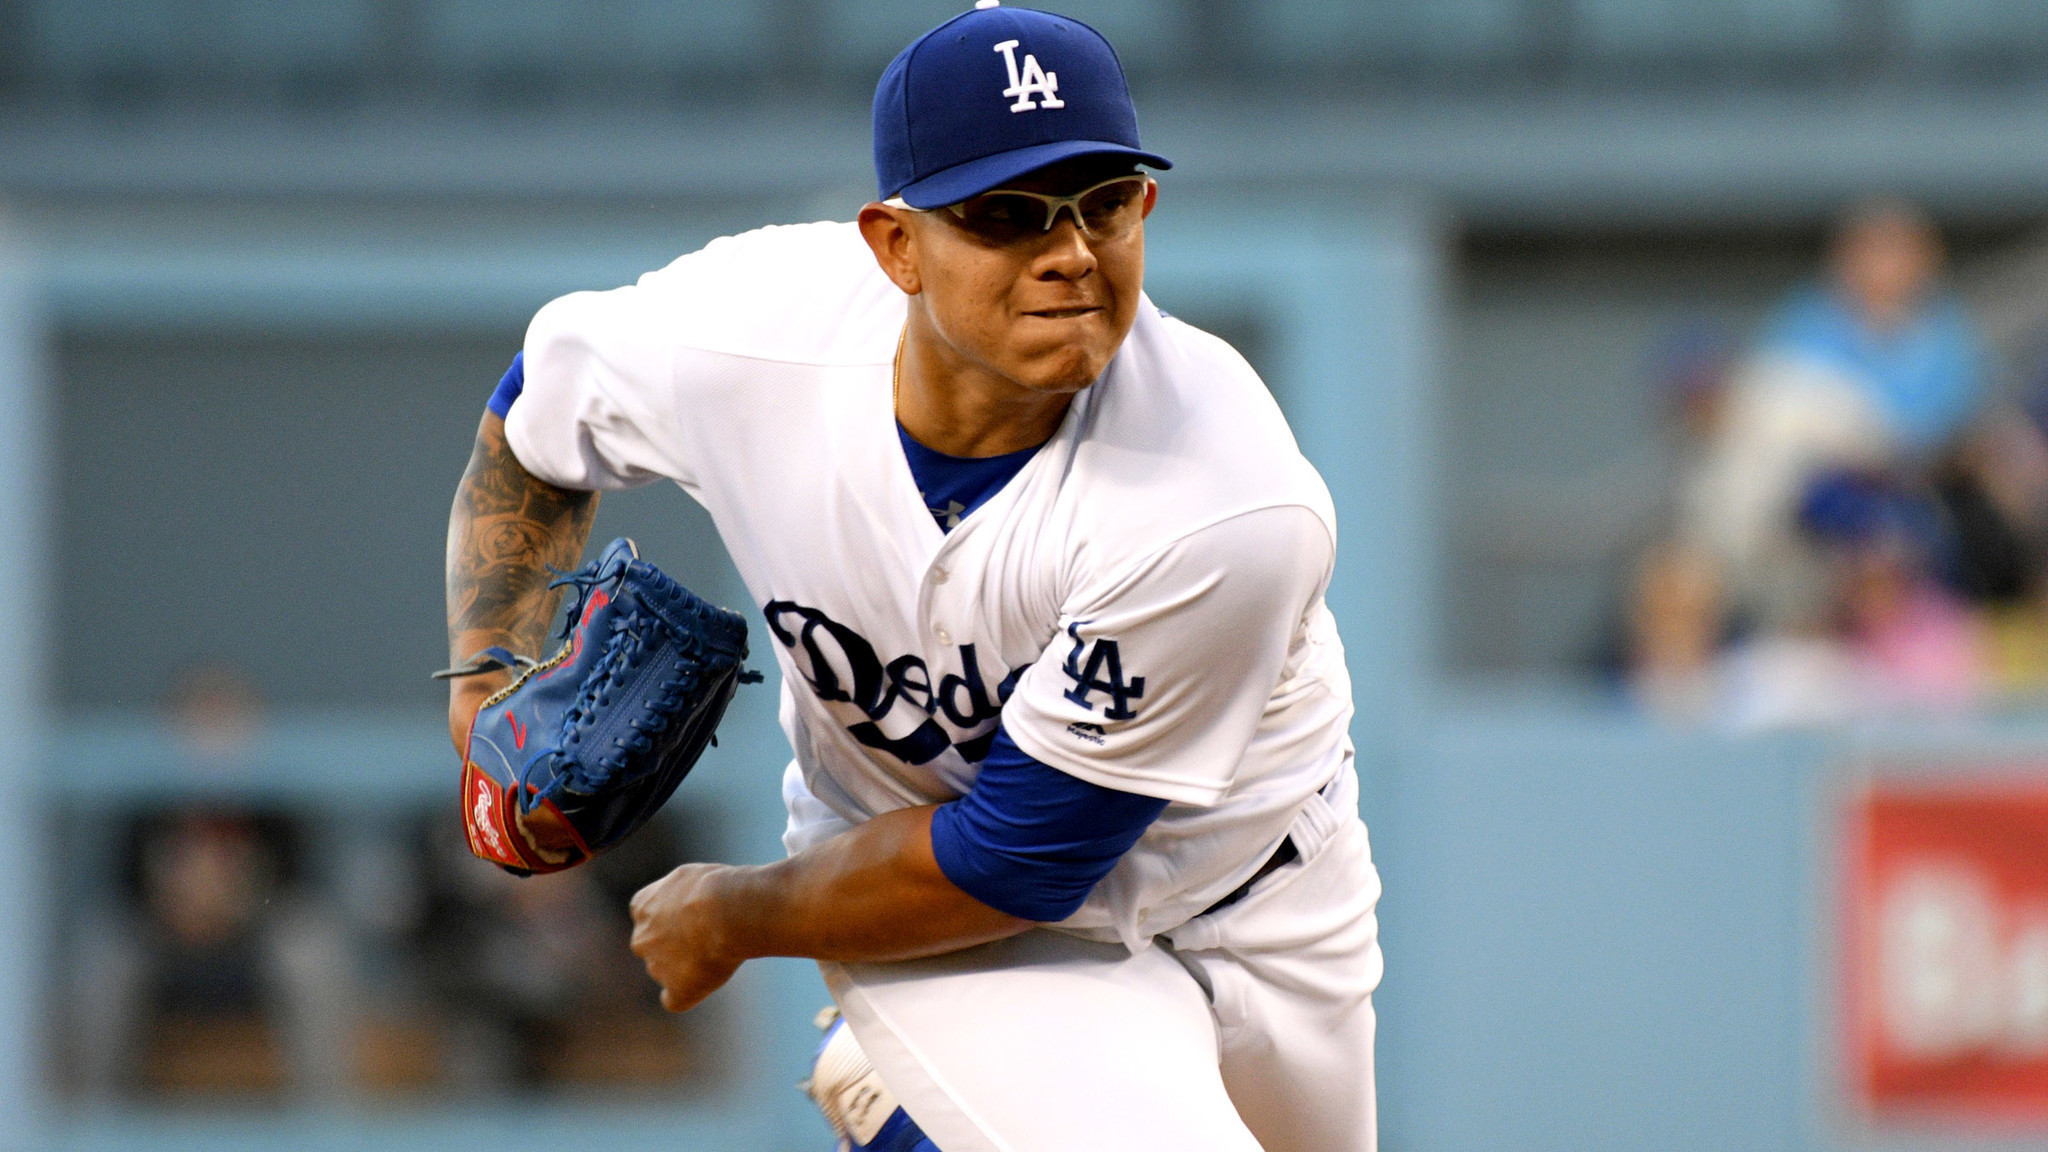 La-sp-dodgers-urias-smoltz-20170624